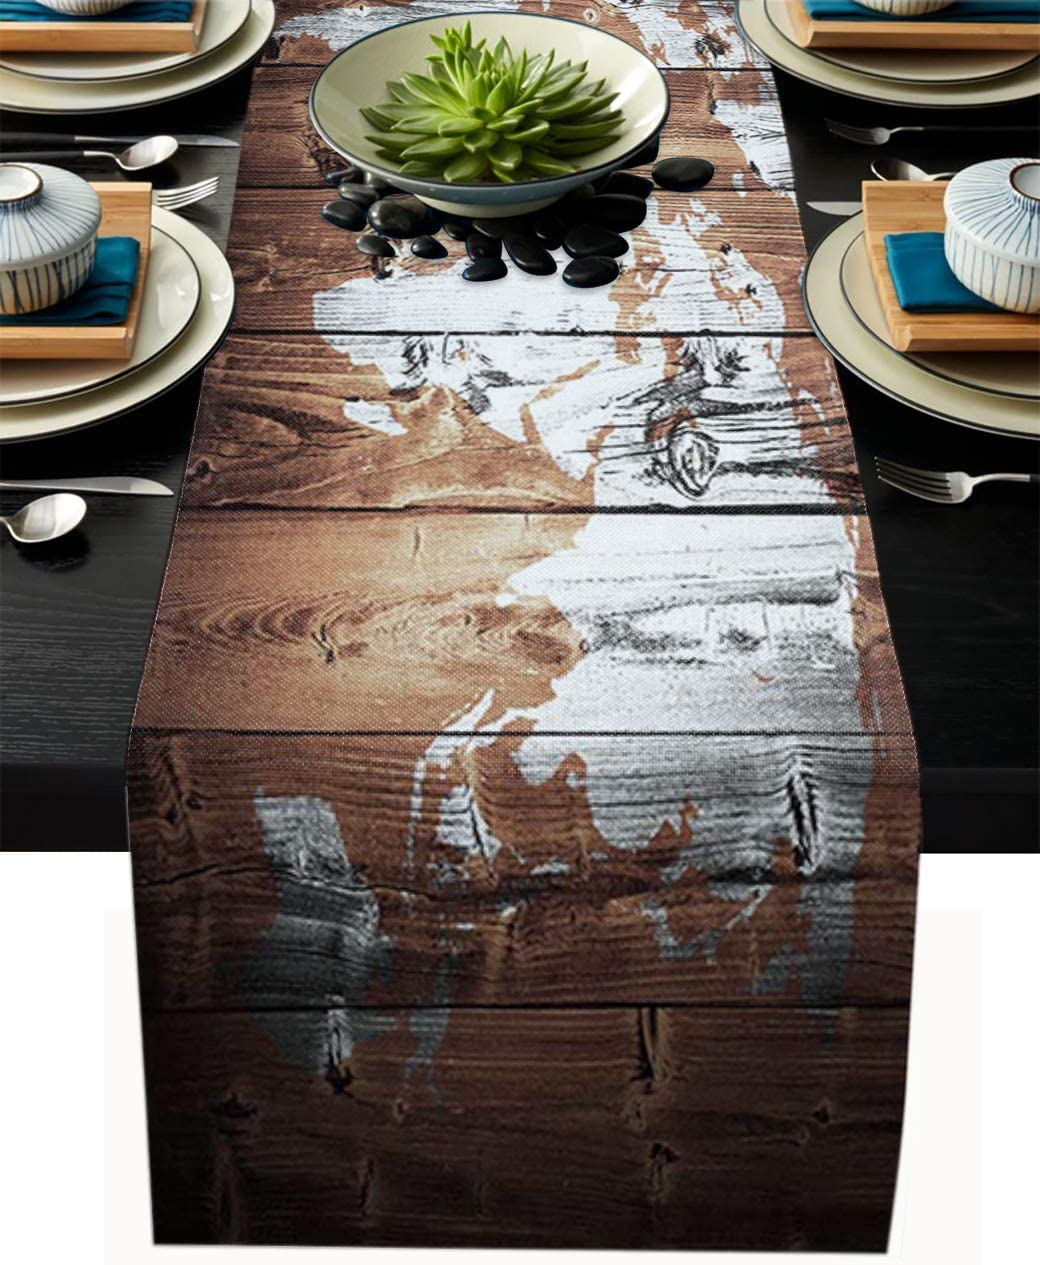 Home Collection dh Vintage Map of The World on The Wood Pattern Non-Slip Table Runner for Tabletop, Fashion Table Runners Perfect for Dinner Parties, Holidays, Everyday Decoration, 14x72in